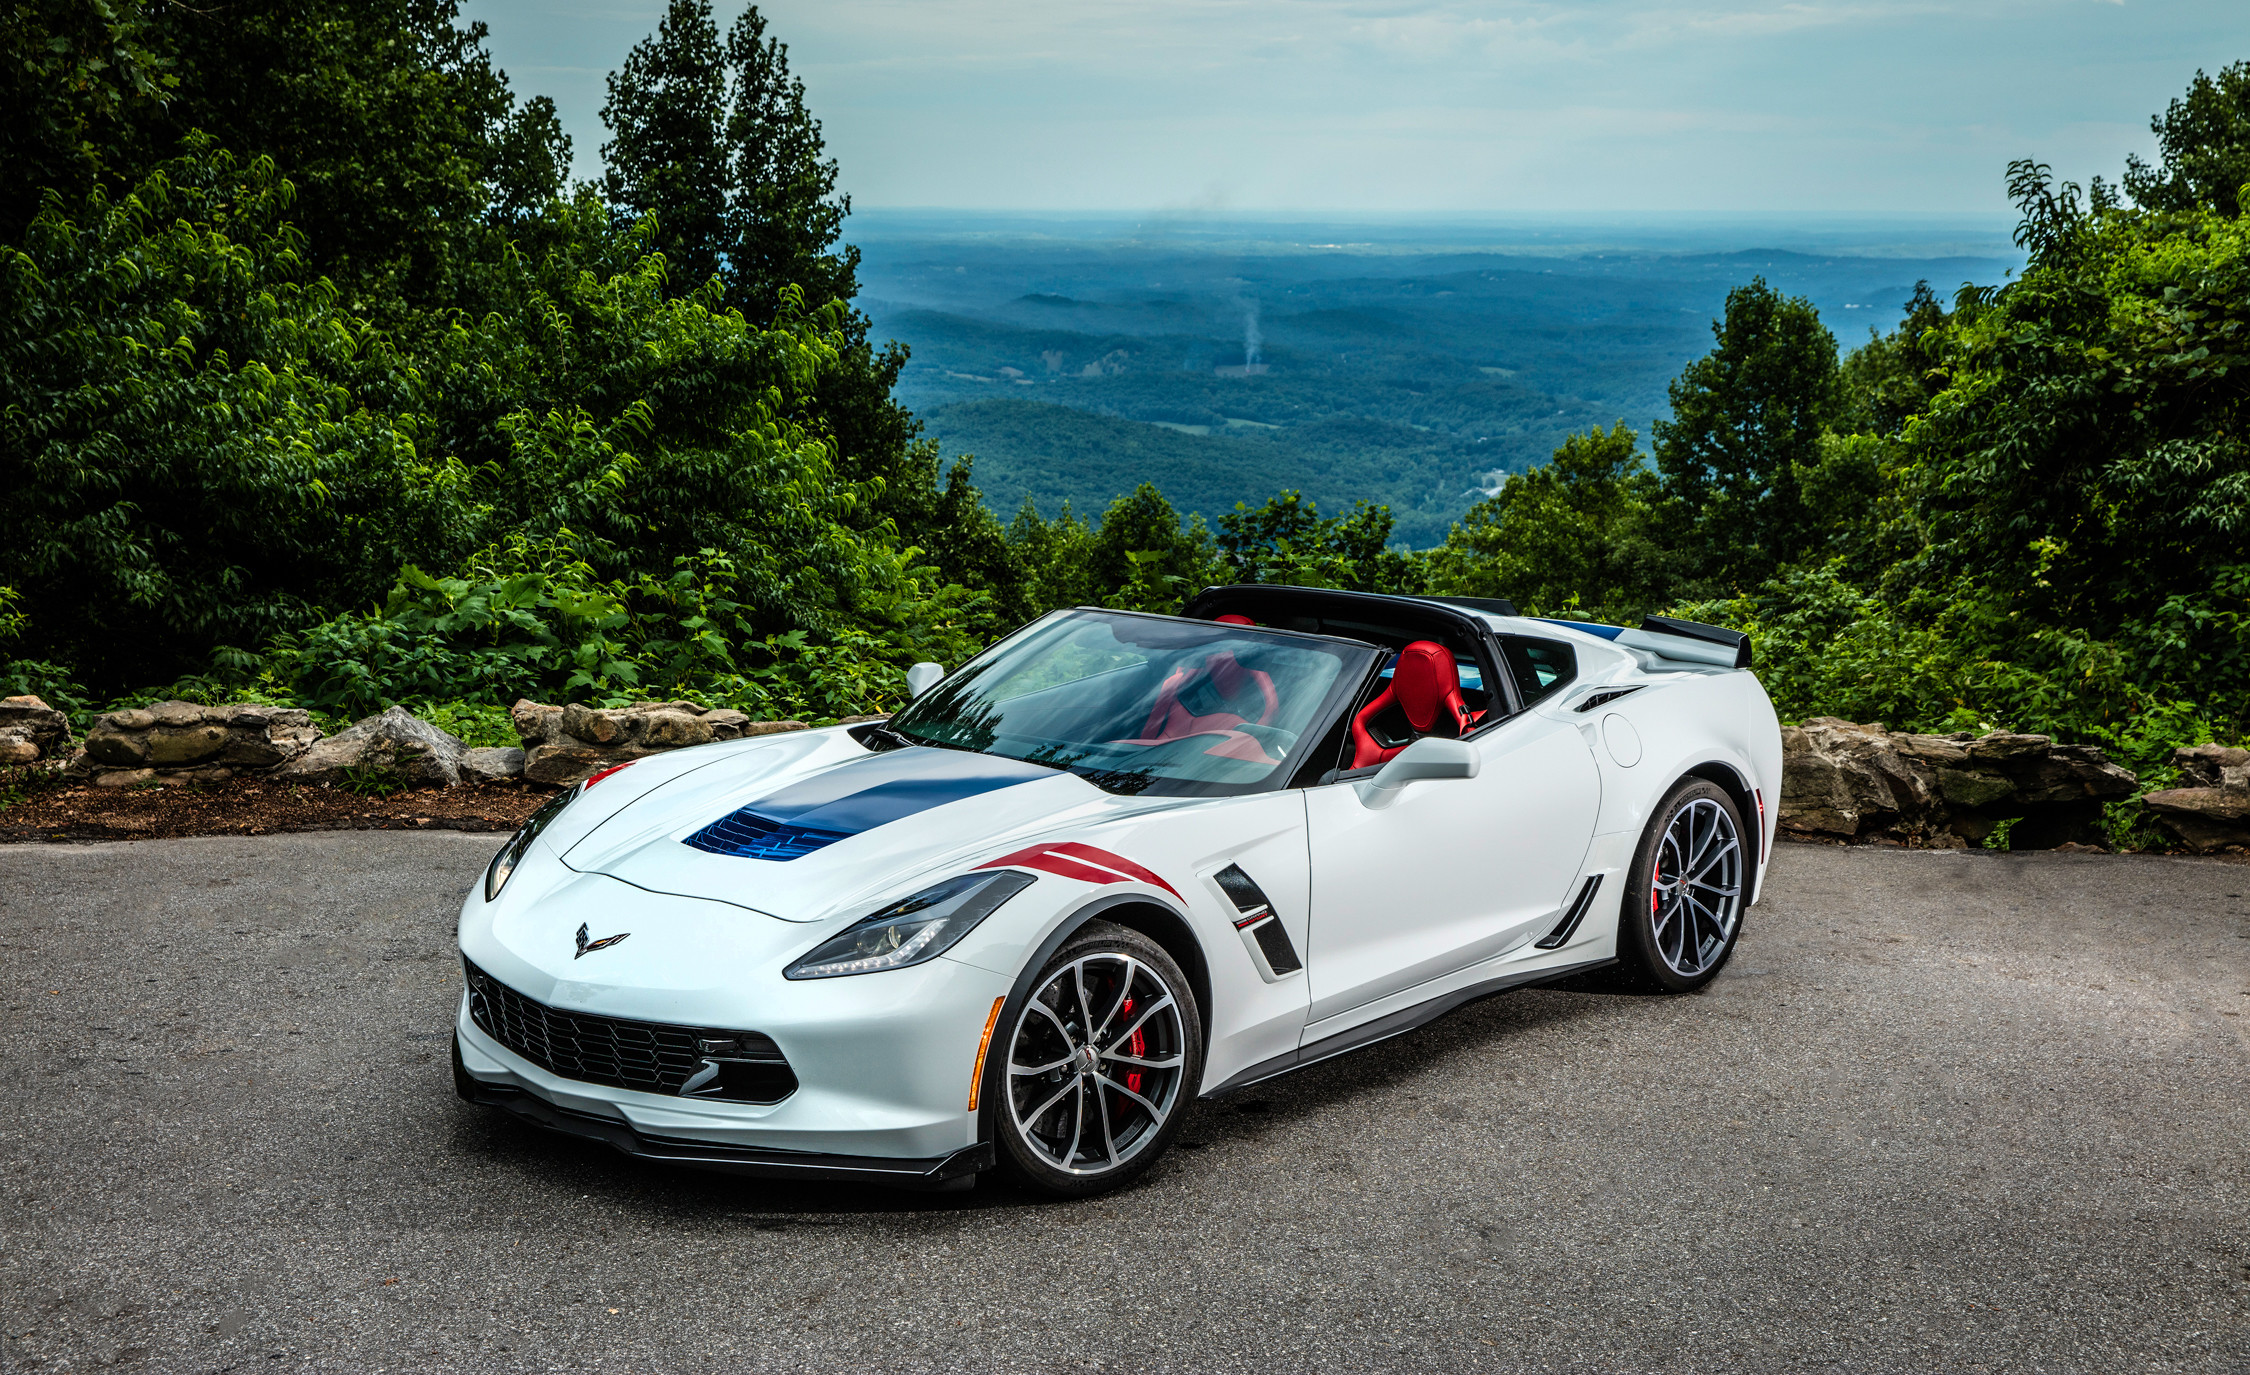 2250x1375 15 Chevrolet Corvette (C7) HD Wallpapers | Backgrounds - Wallpaper Abyss